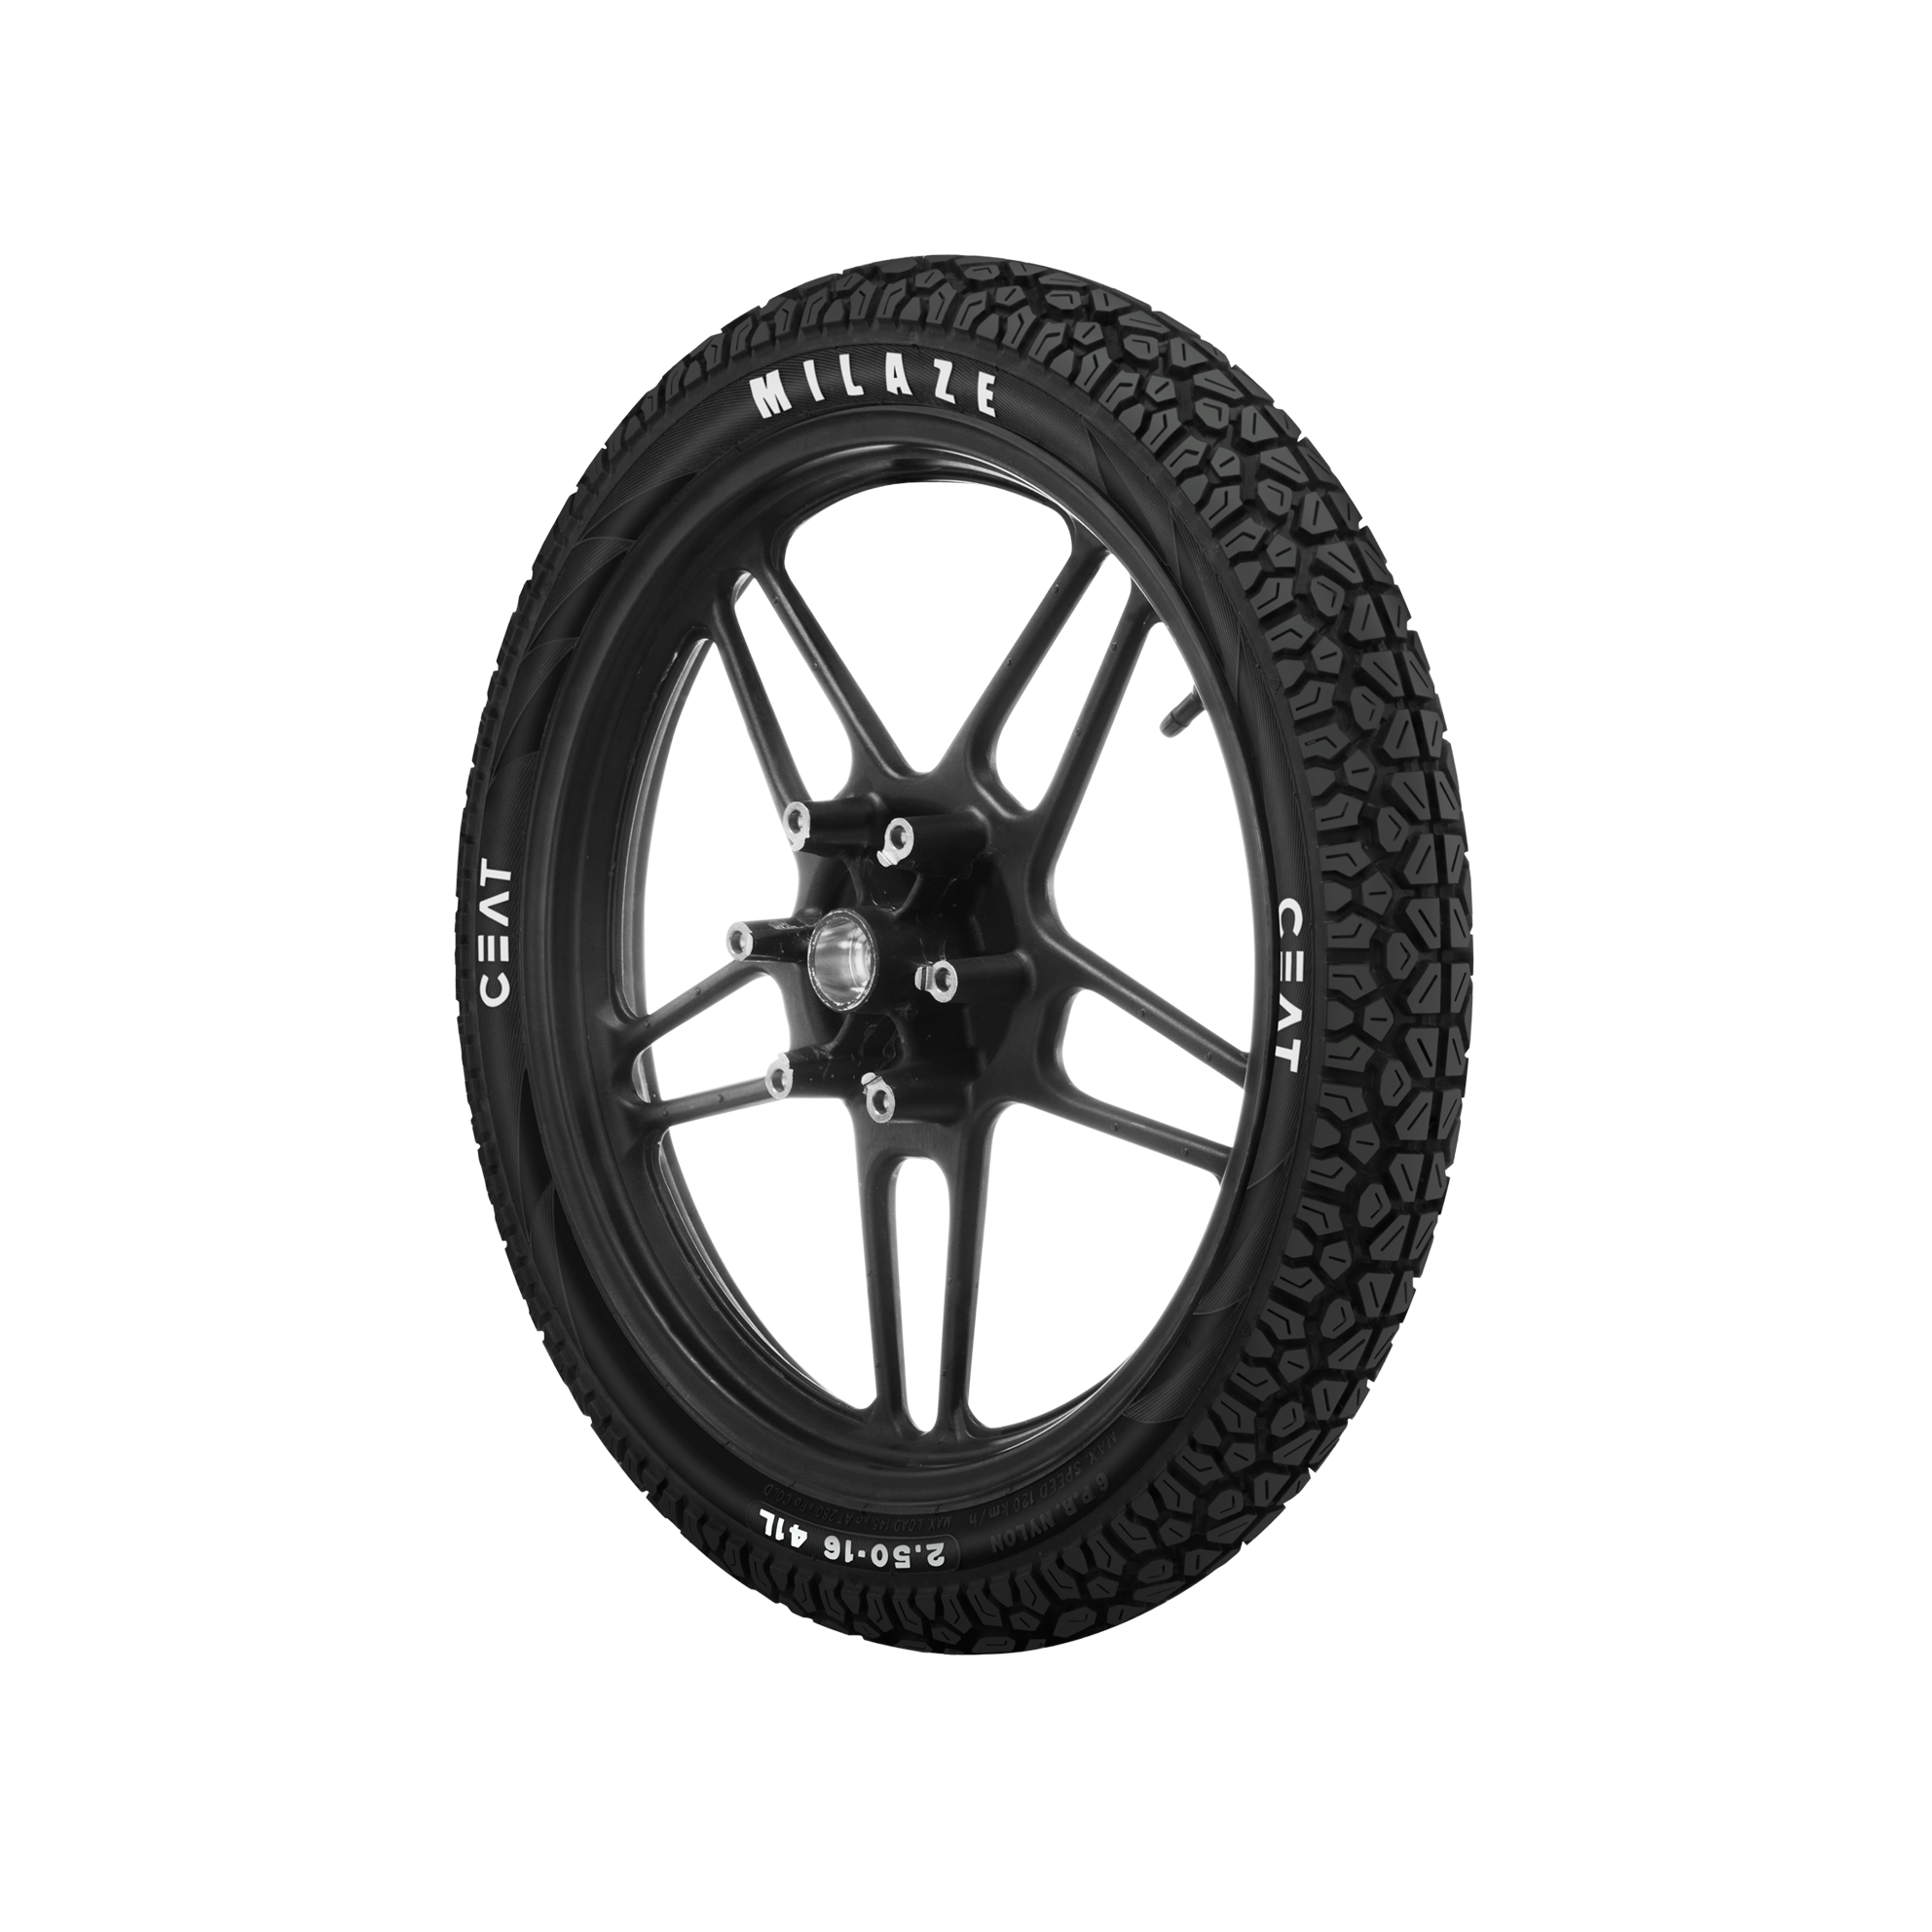 Ceat MILAZE 3-50 R 10 Front/Rear Two-Wheeler Tyre